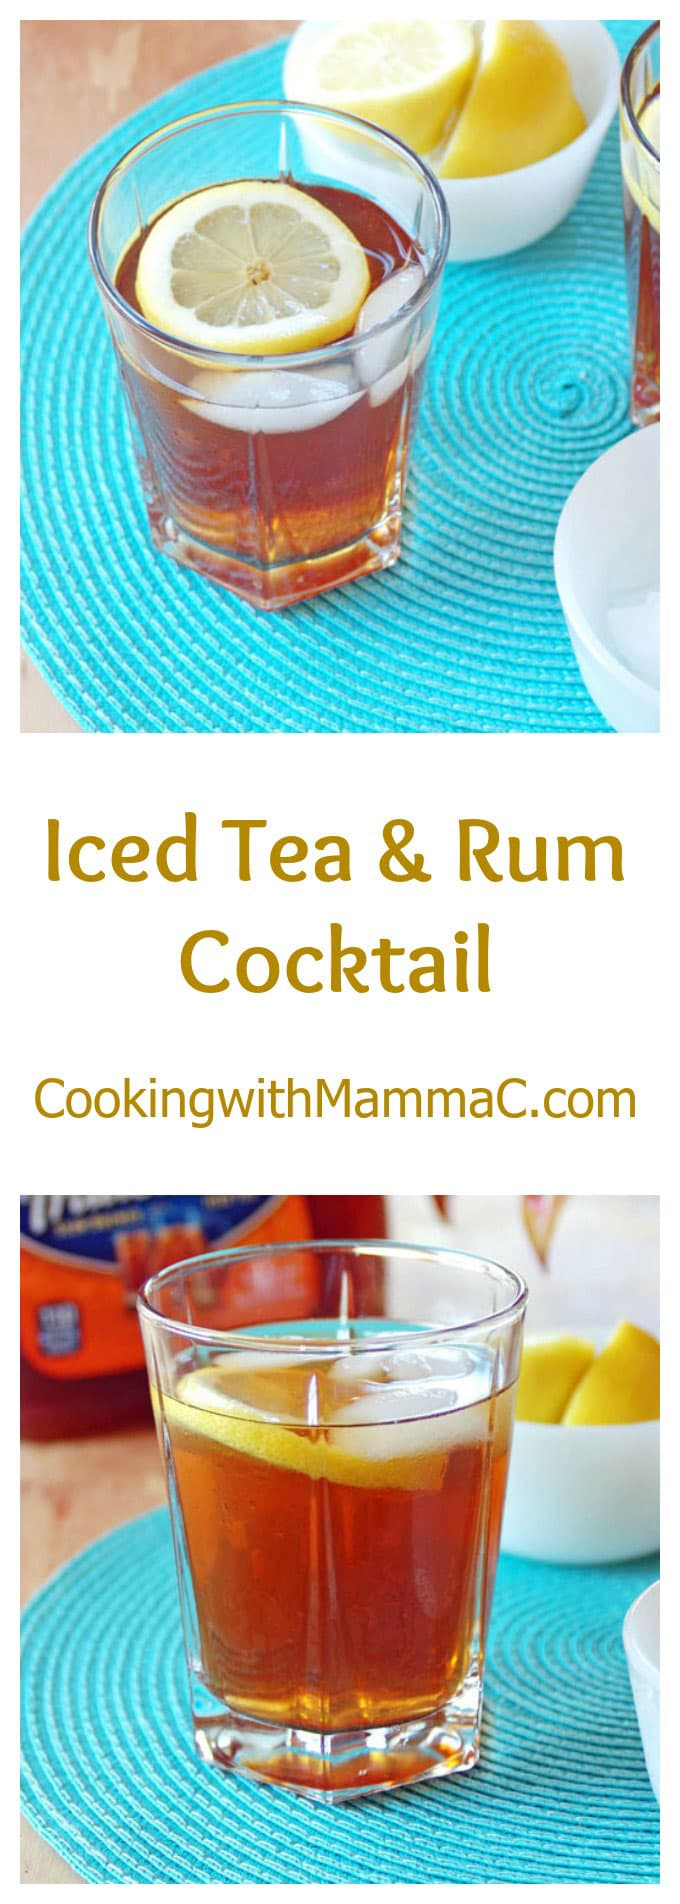 This Iced Tea and Rum Cocktail has just three ingredients and is so refreshing! An easy summer drink to enjoy with friends. #ad #MomentsToSavor